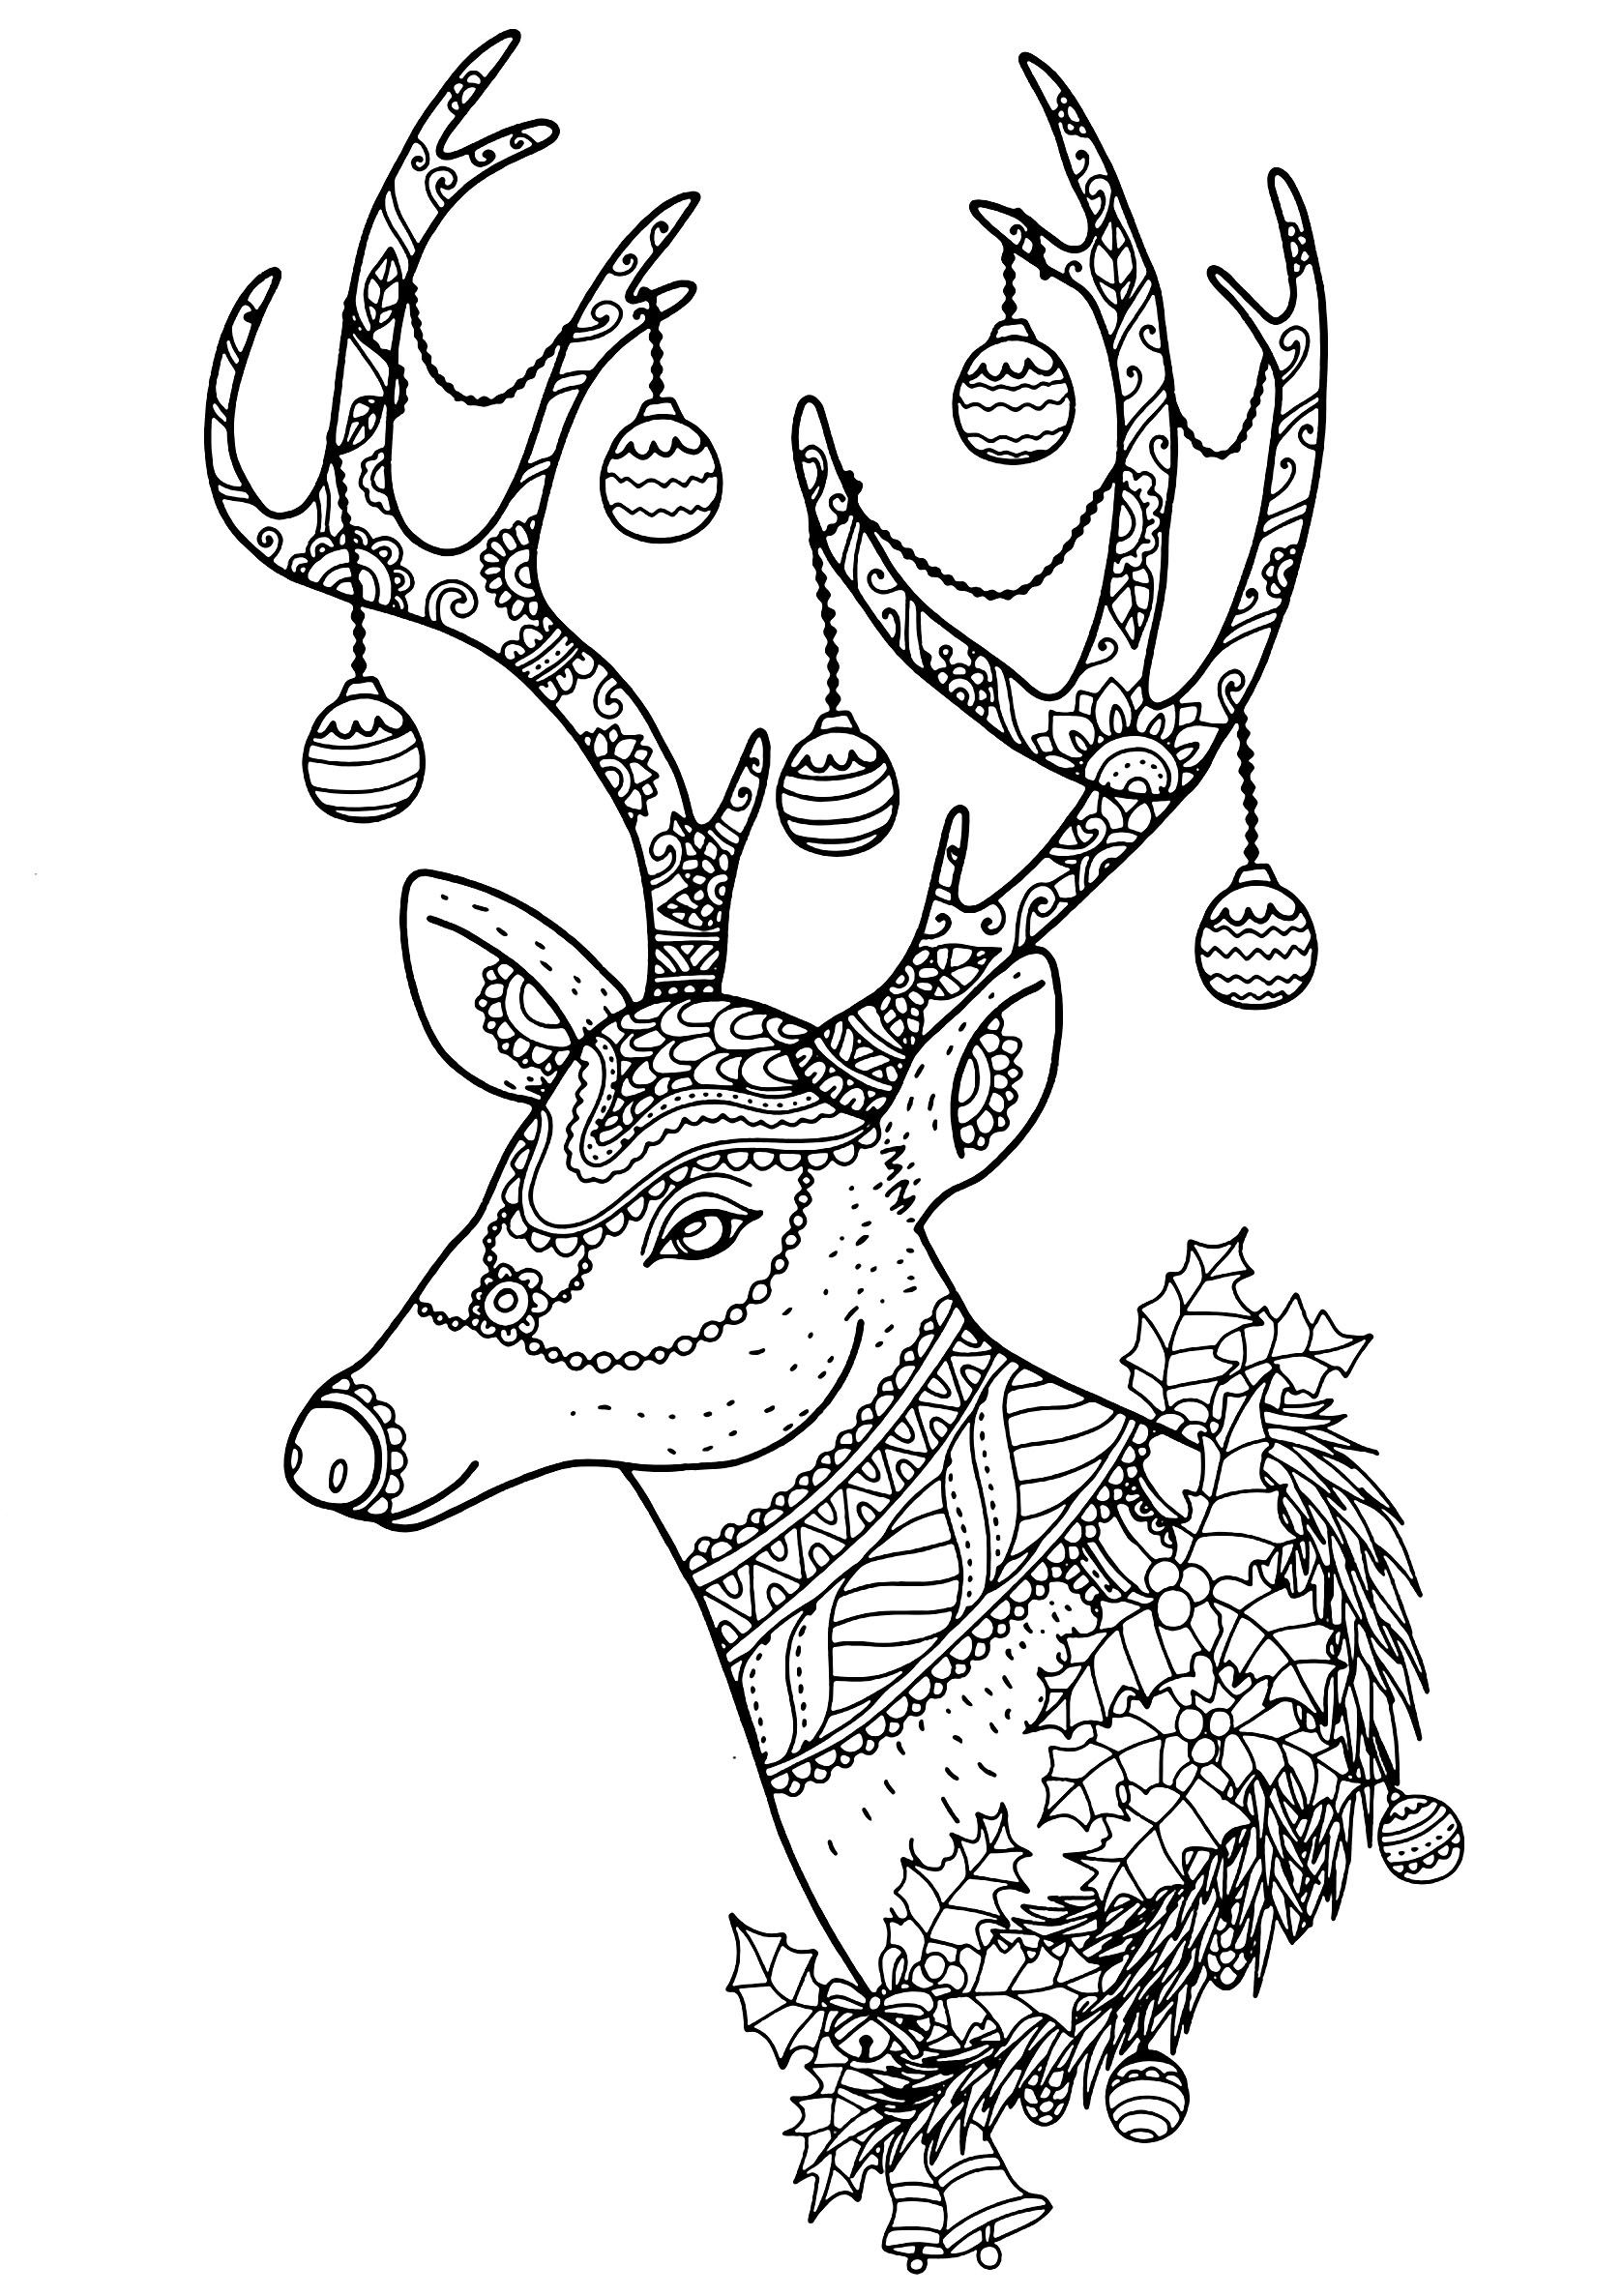 Pin By Chantal Lemire On Dessins Hiver Noel Deer Coloring Pages Printable Christmas Coloring Pages Mandala Coloring Pages